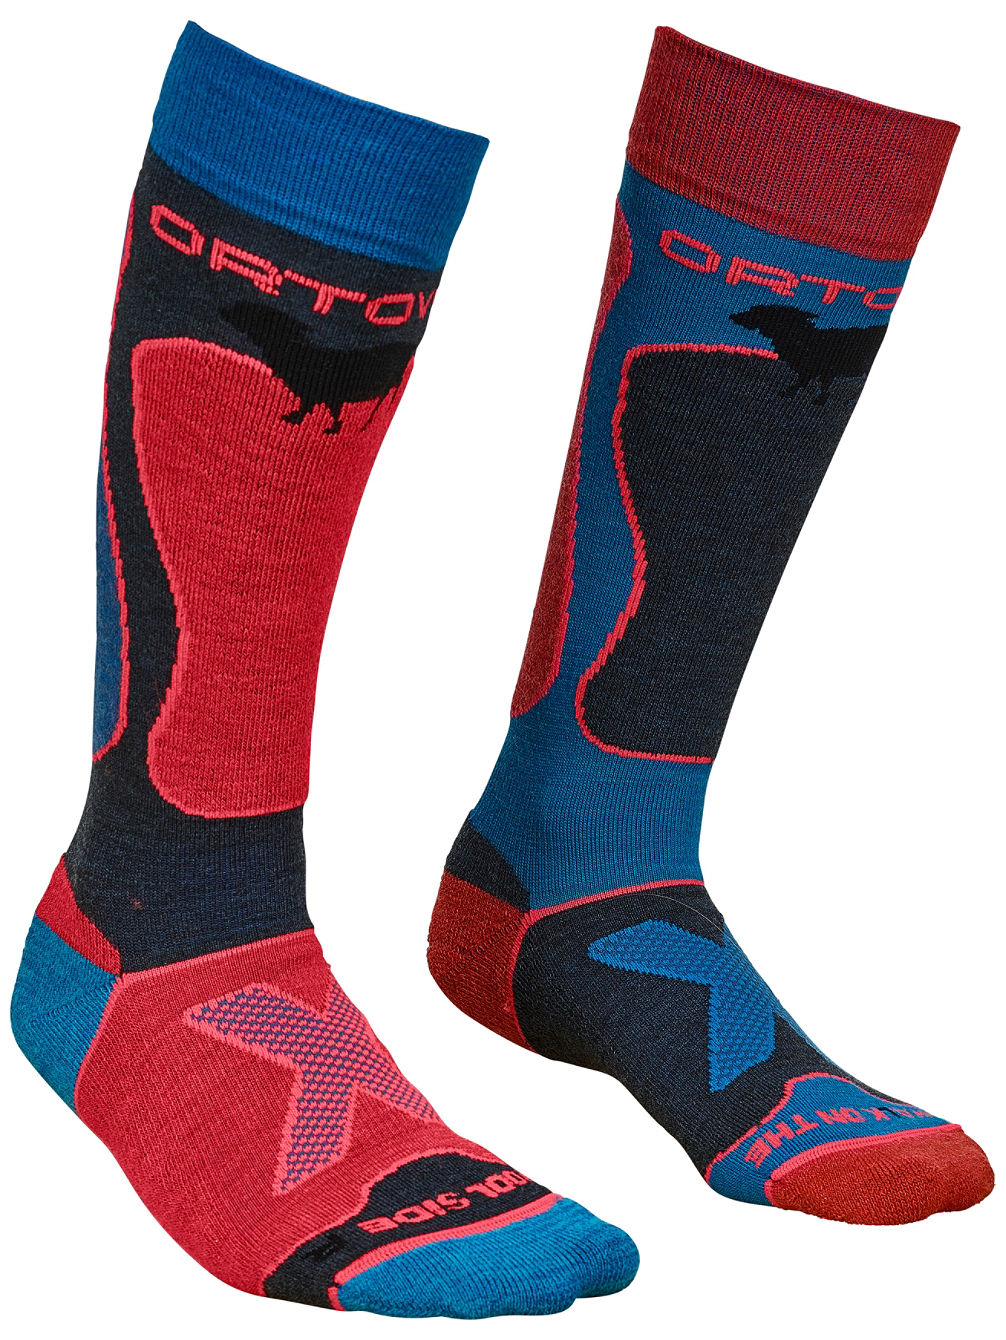 Ski Rock'N'Wool 39-41 Tech Socks